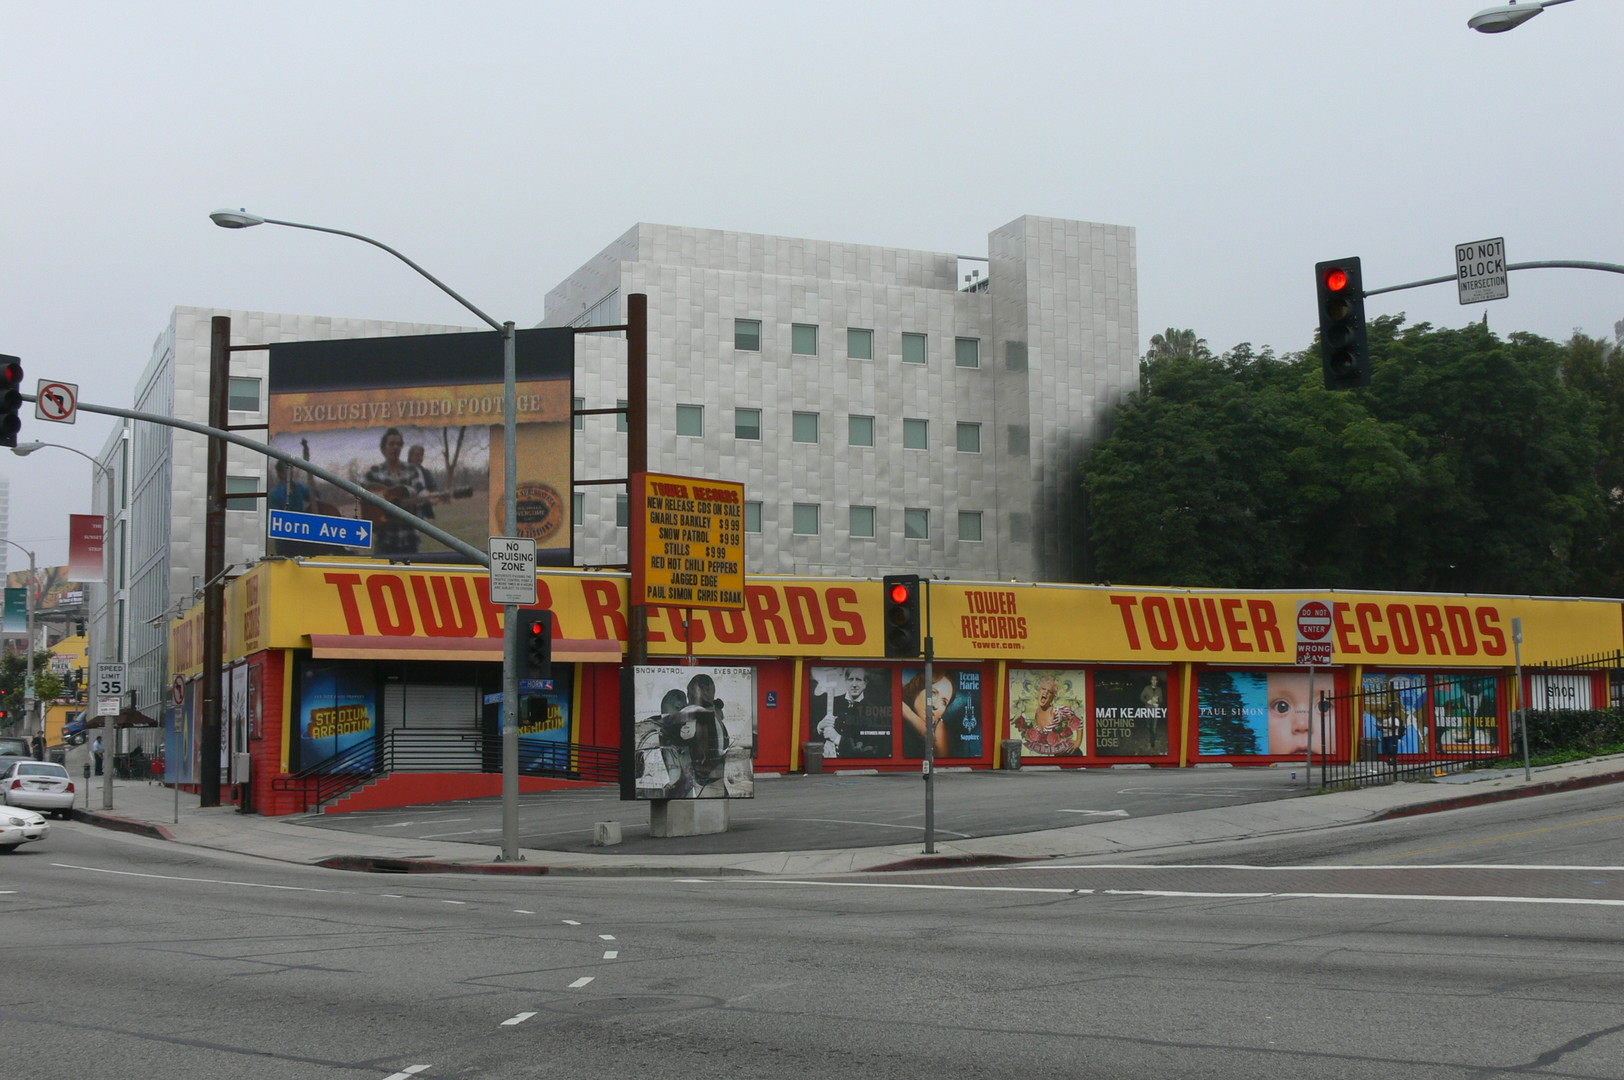 Tower Records finally went bankrupt in 2004 after years of mismanagement, large amounts of incurred debt from aggressive expansion and illegal downloading. Photo by Mike Dillon.